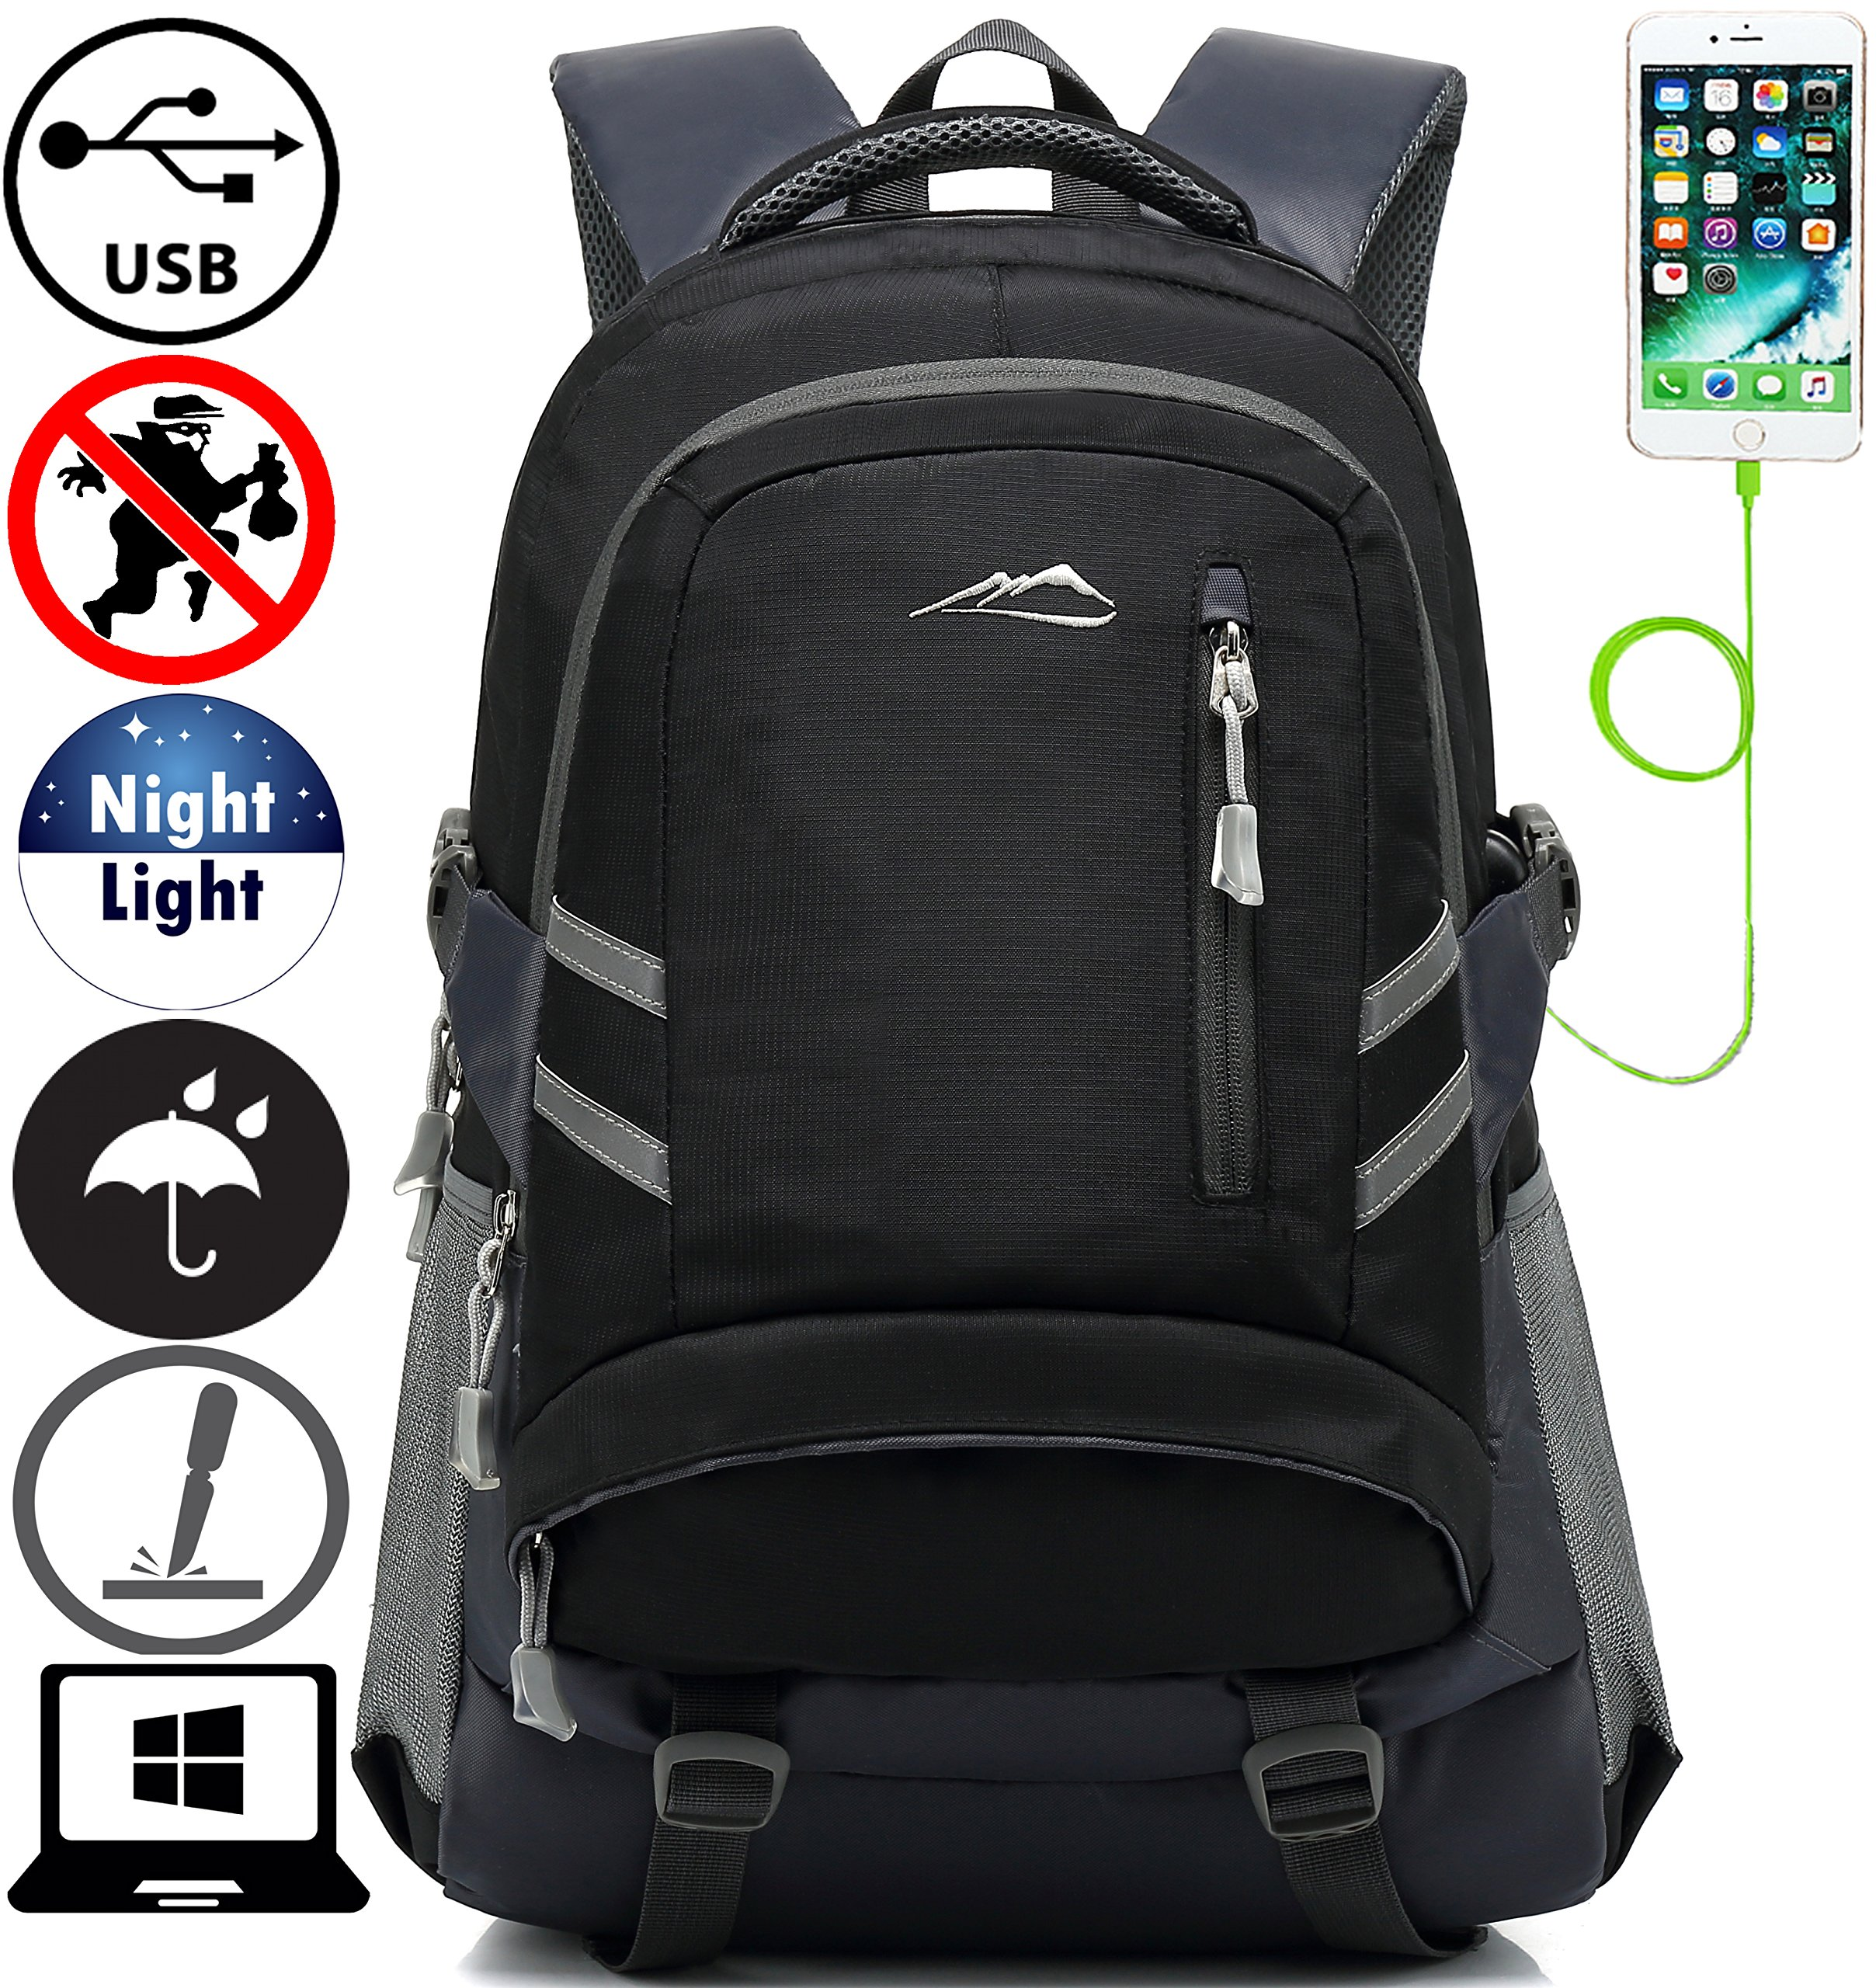 Backpack Bookbag For School College Student Travel Business With USB Charging Port Water Resistant Fit Laptop Up to 15.6 Inch Anti theft Night Light Reflective (Black)